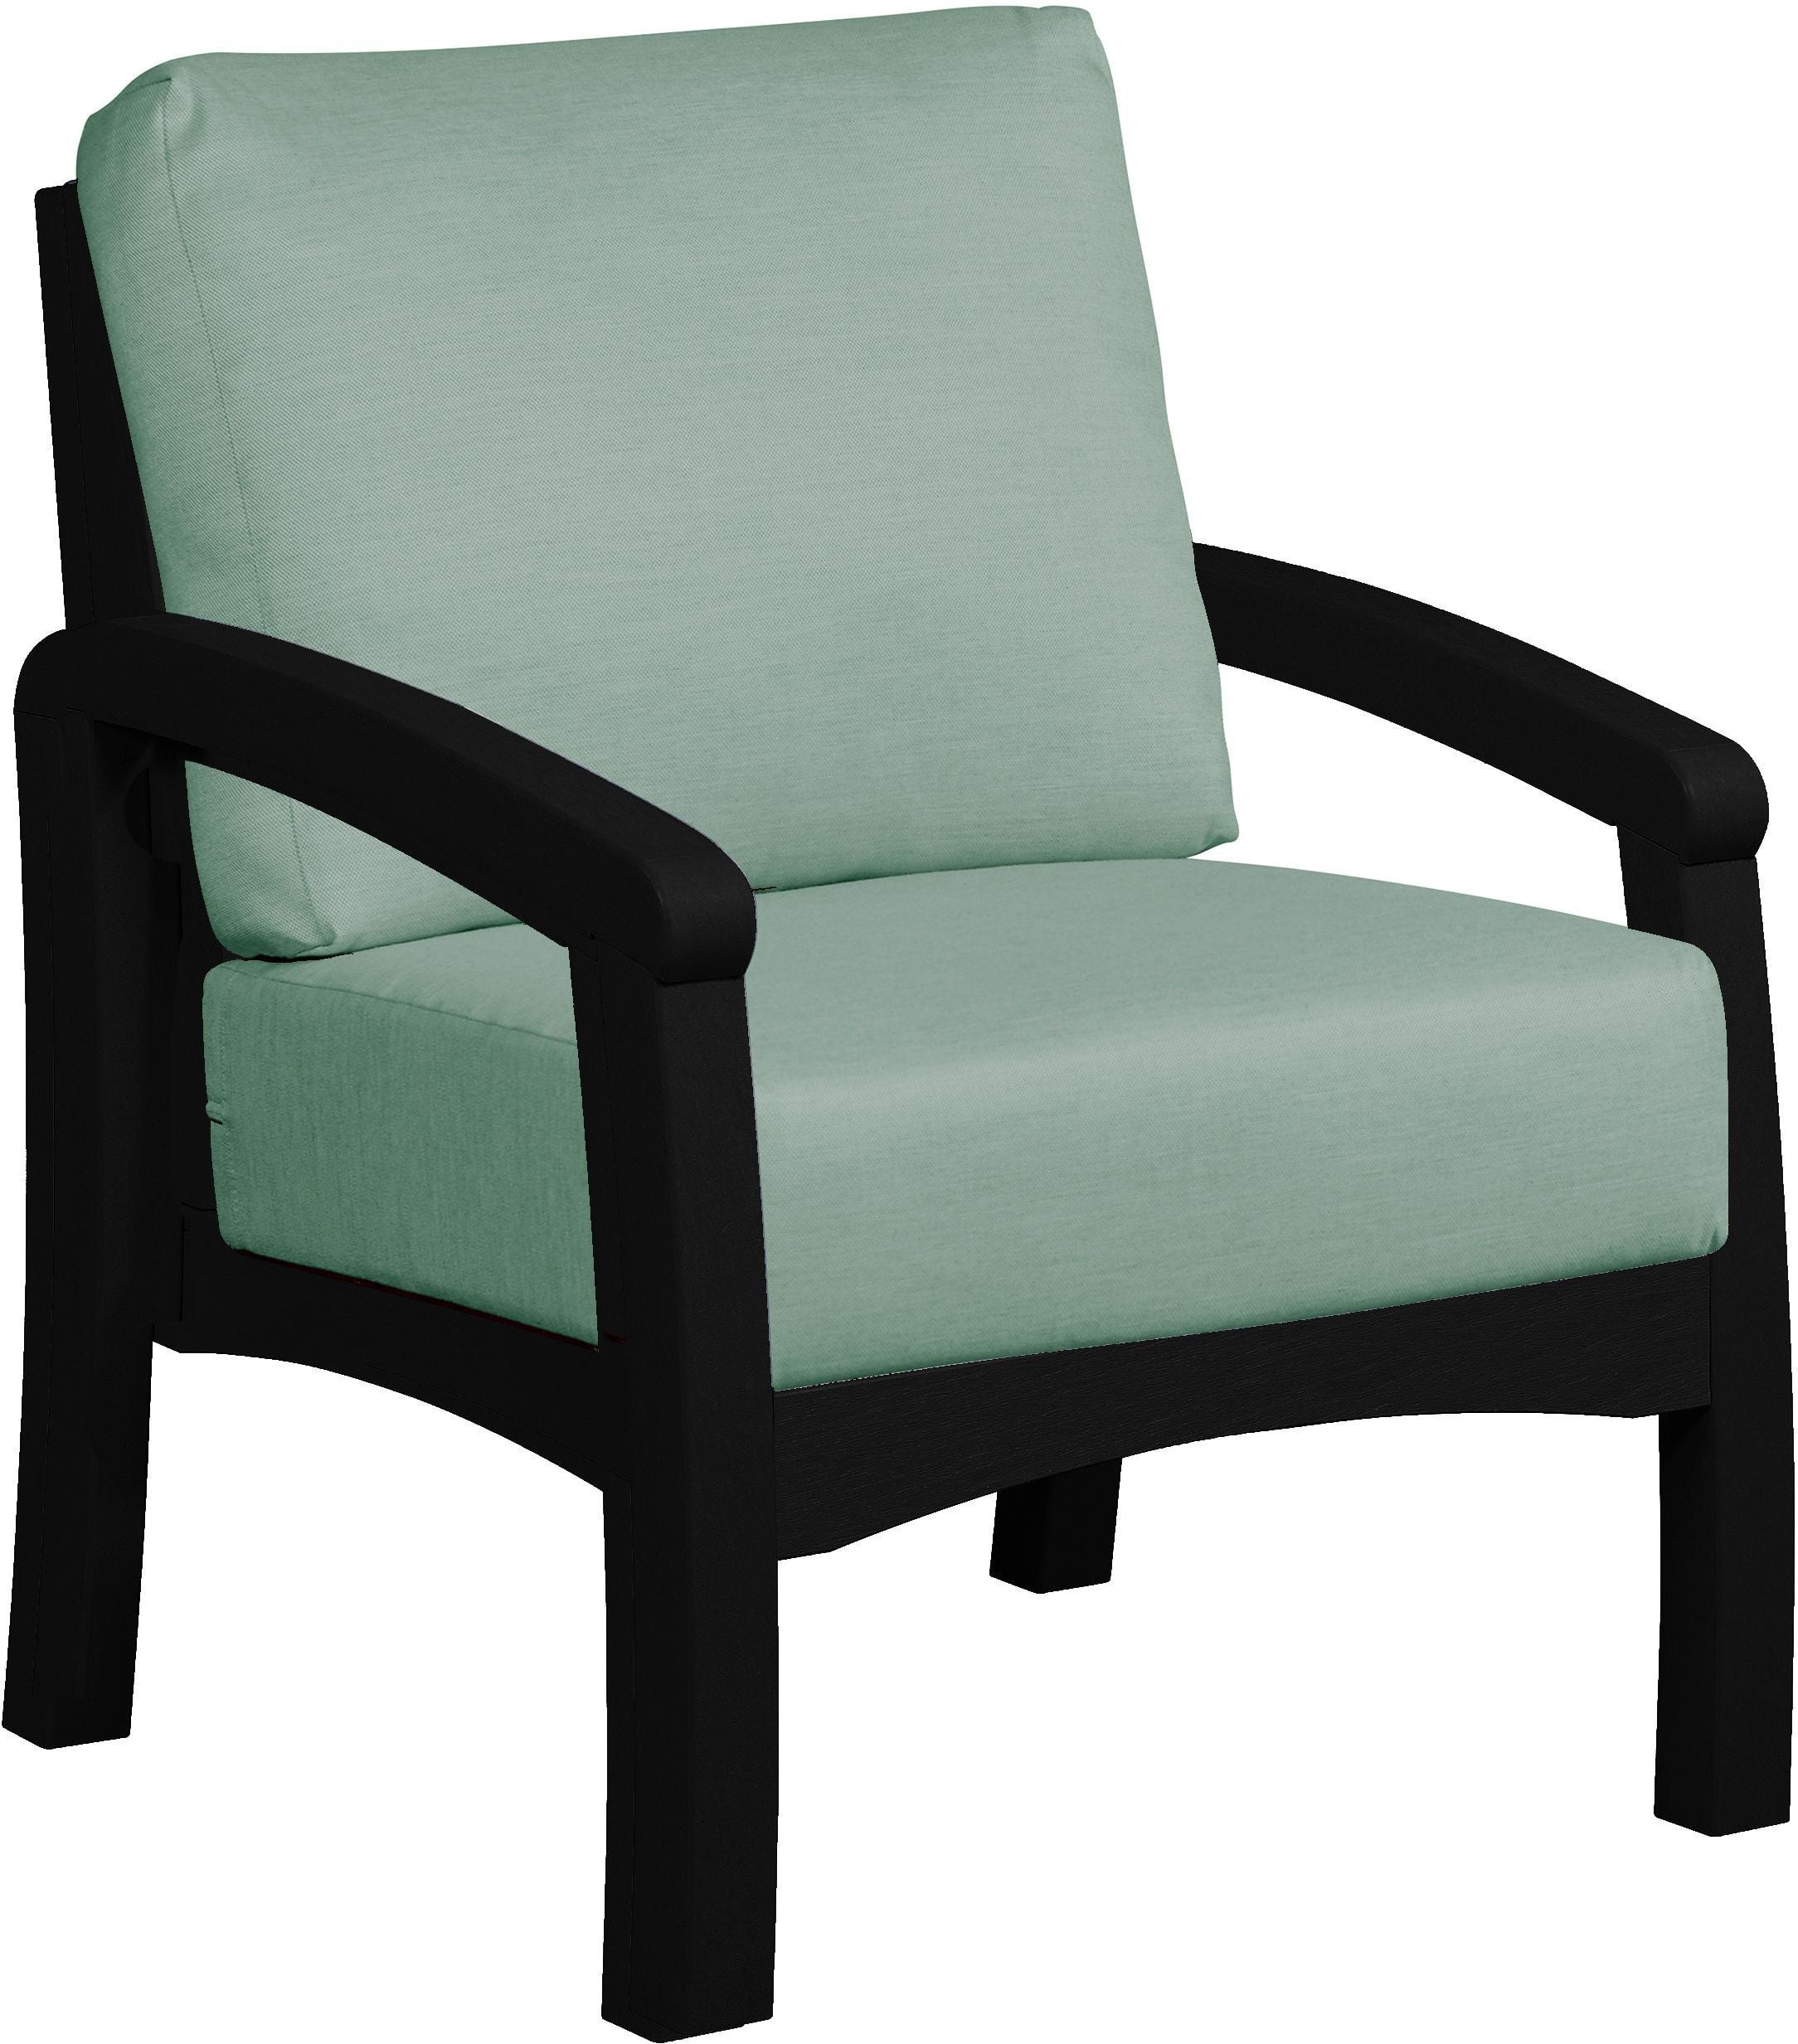 Bay Breeze Black Arm Chair with Canvas Spa Cushion from CR